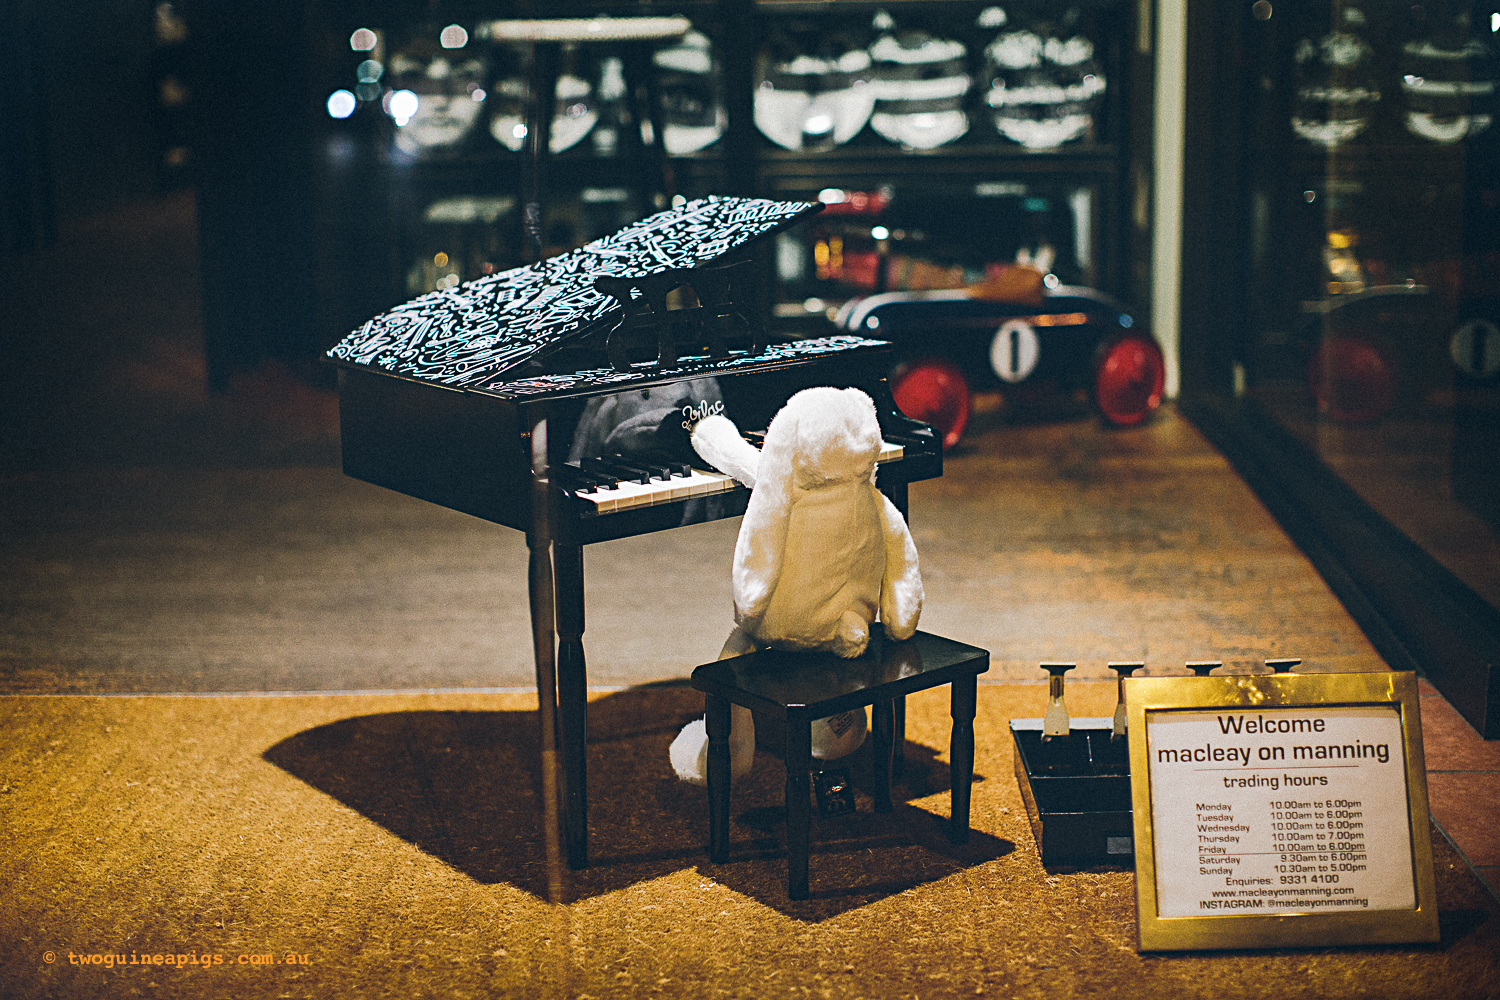 twoguineapigs_pet_photography_macleay_on_manning_bunny_piano_performance_1500.jpg